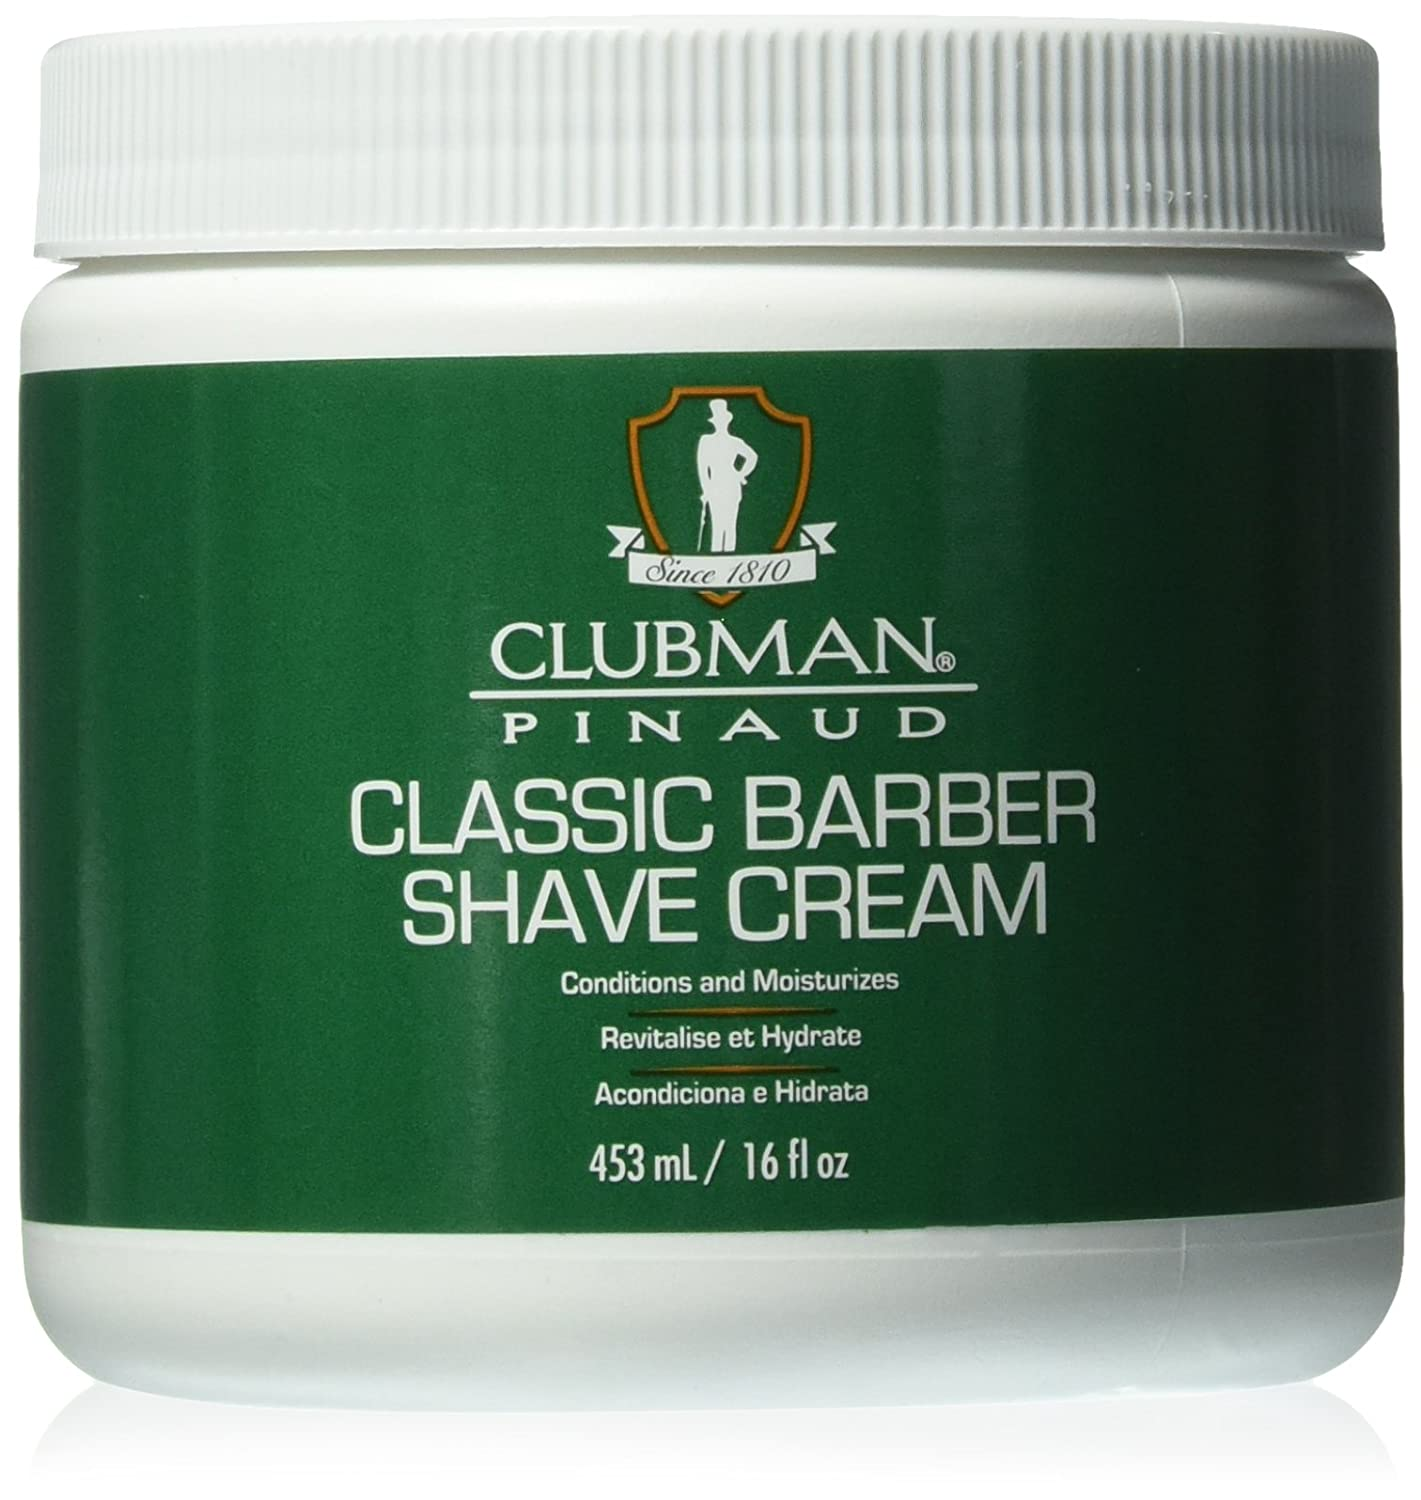 Clubman Pinaud Classic Barber Shave Cream, Conditioner and Moisturizes, 16 fl oz/453 mL 40329